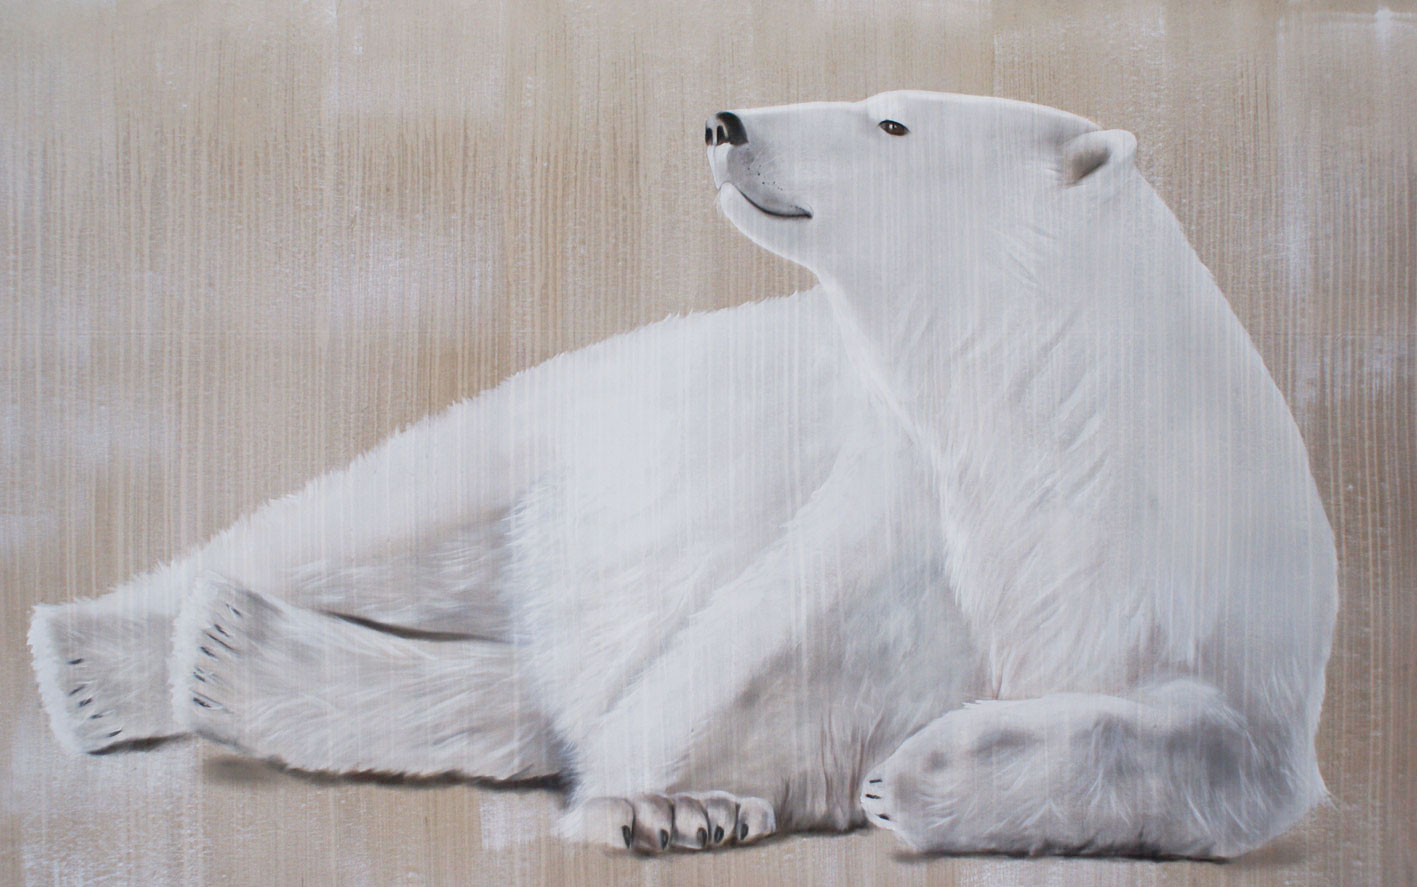 RELAXING POLAR BEAR 2 divers Thierry Bisch painter animals painting art decoration hotel design interior luxury nature biodiversity conservation